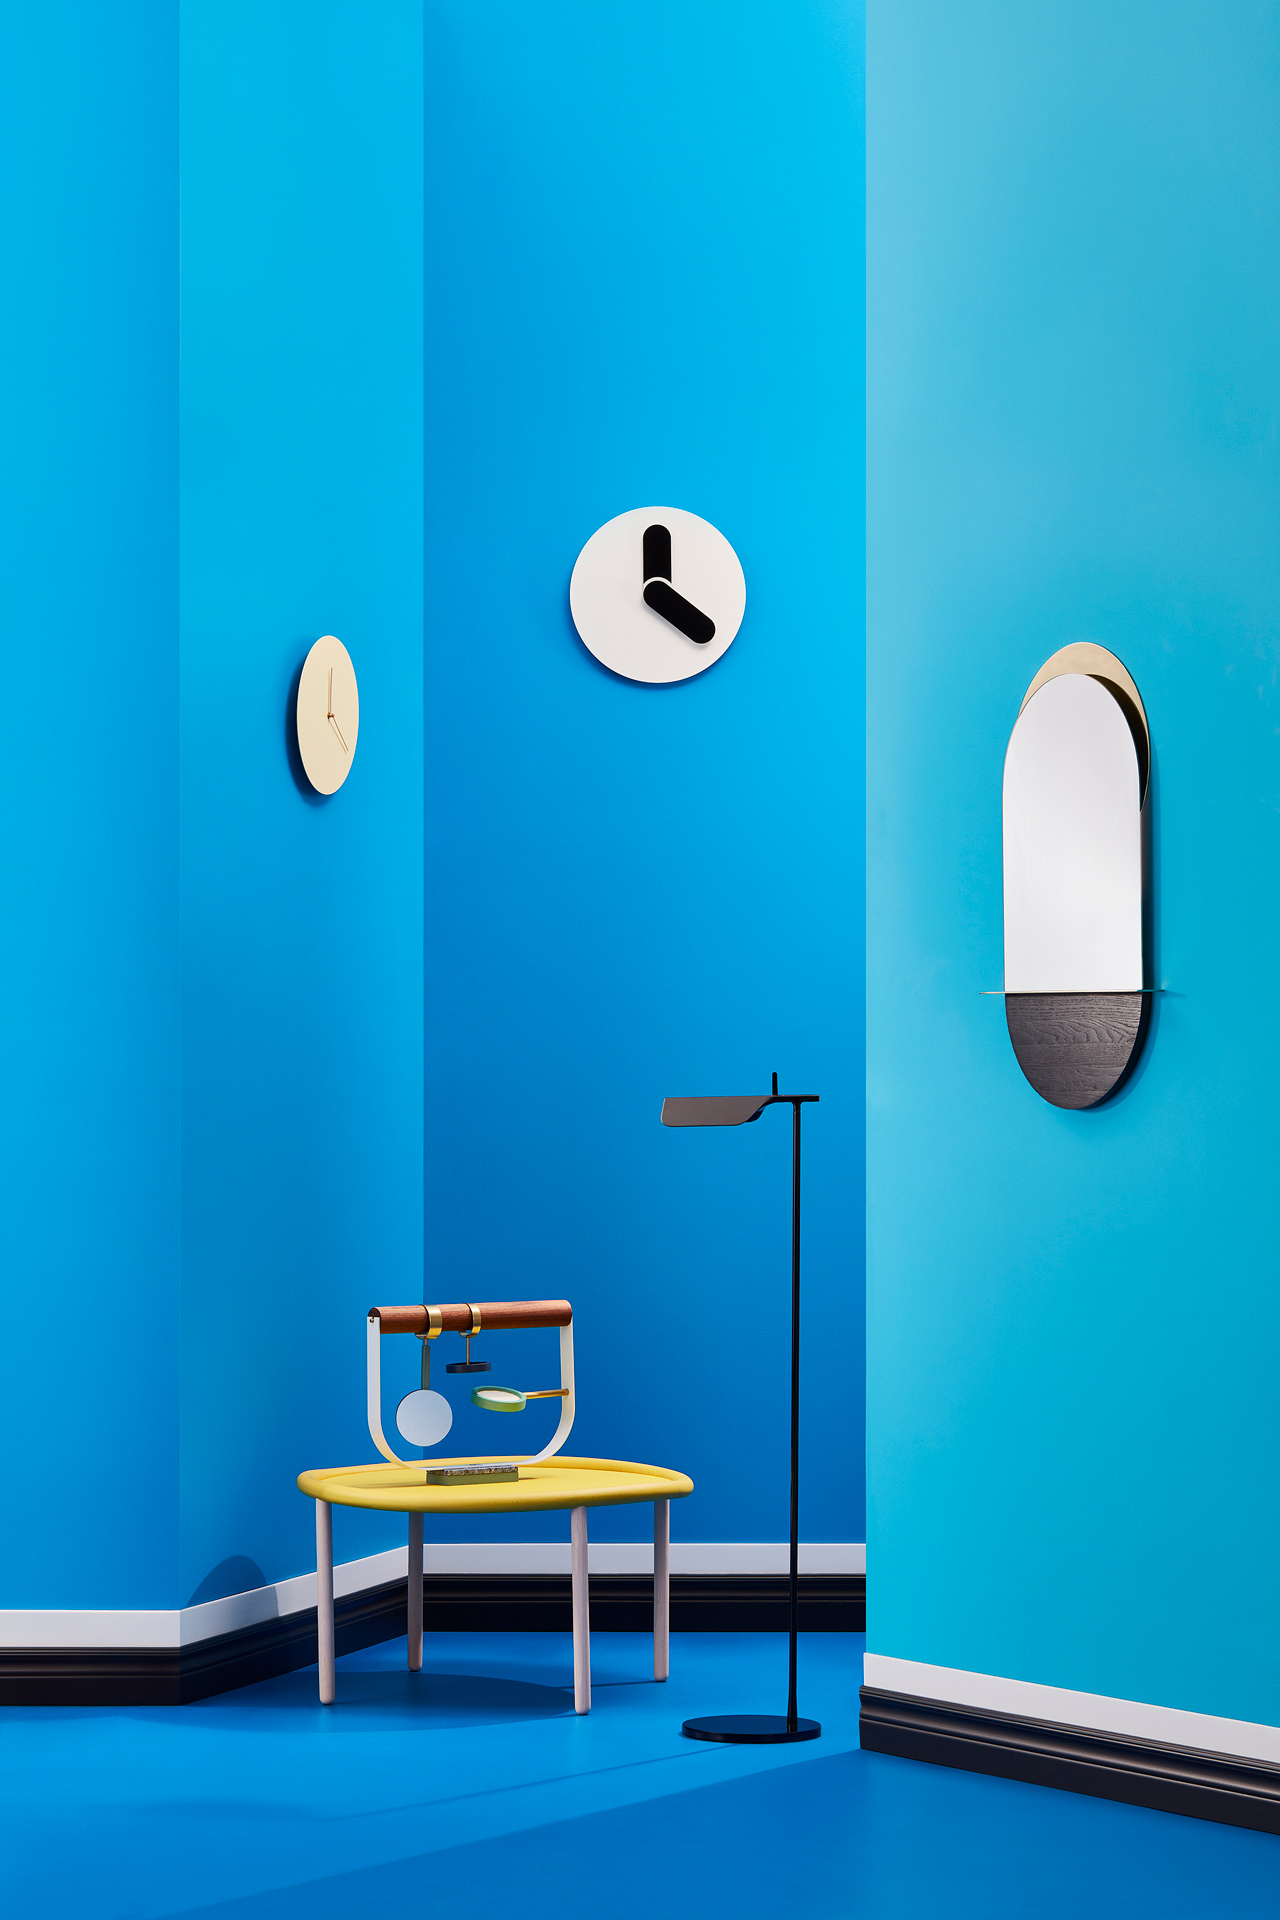 interior design with blue theme with low yellow side table clocks on the wall and small mirroir by Mathieu Levesque